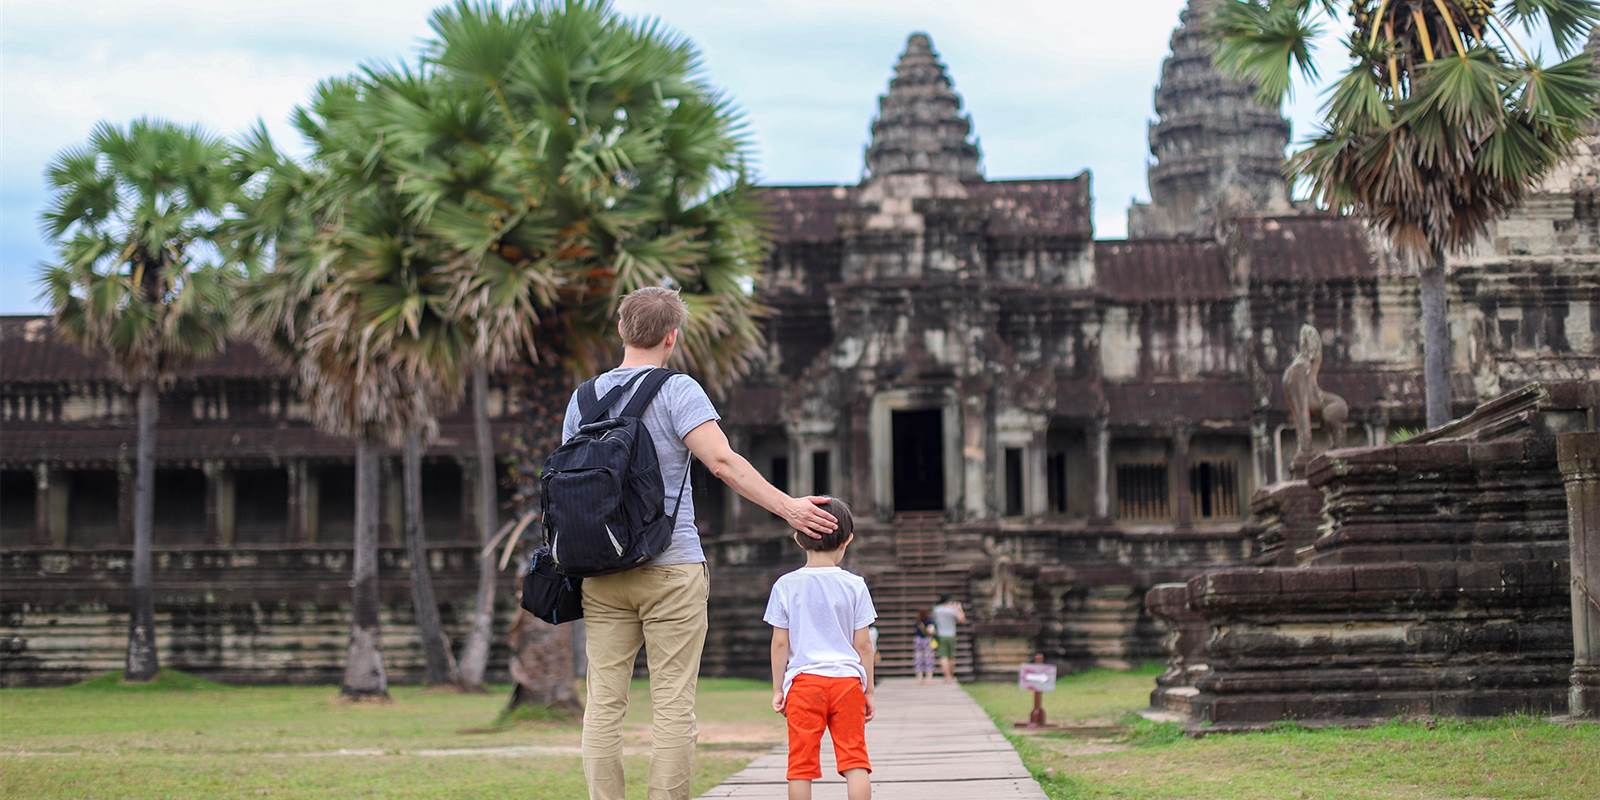 The Ultimate Guide to an Eco-friendly Family Getaway in Cambodia